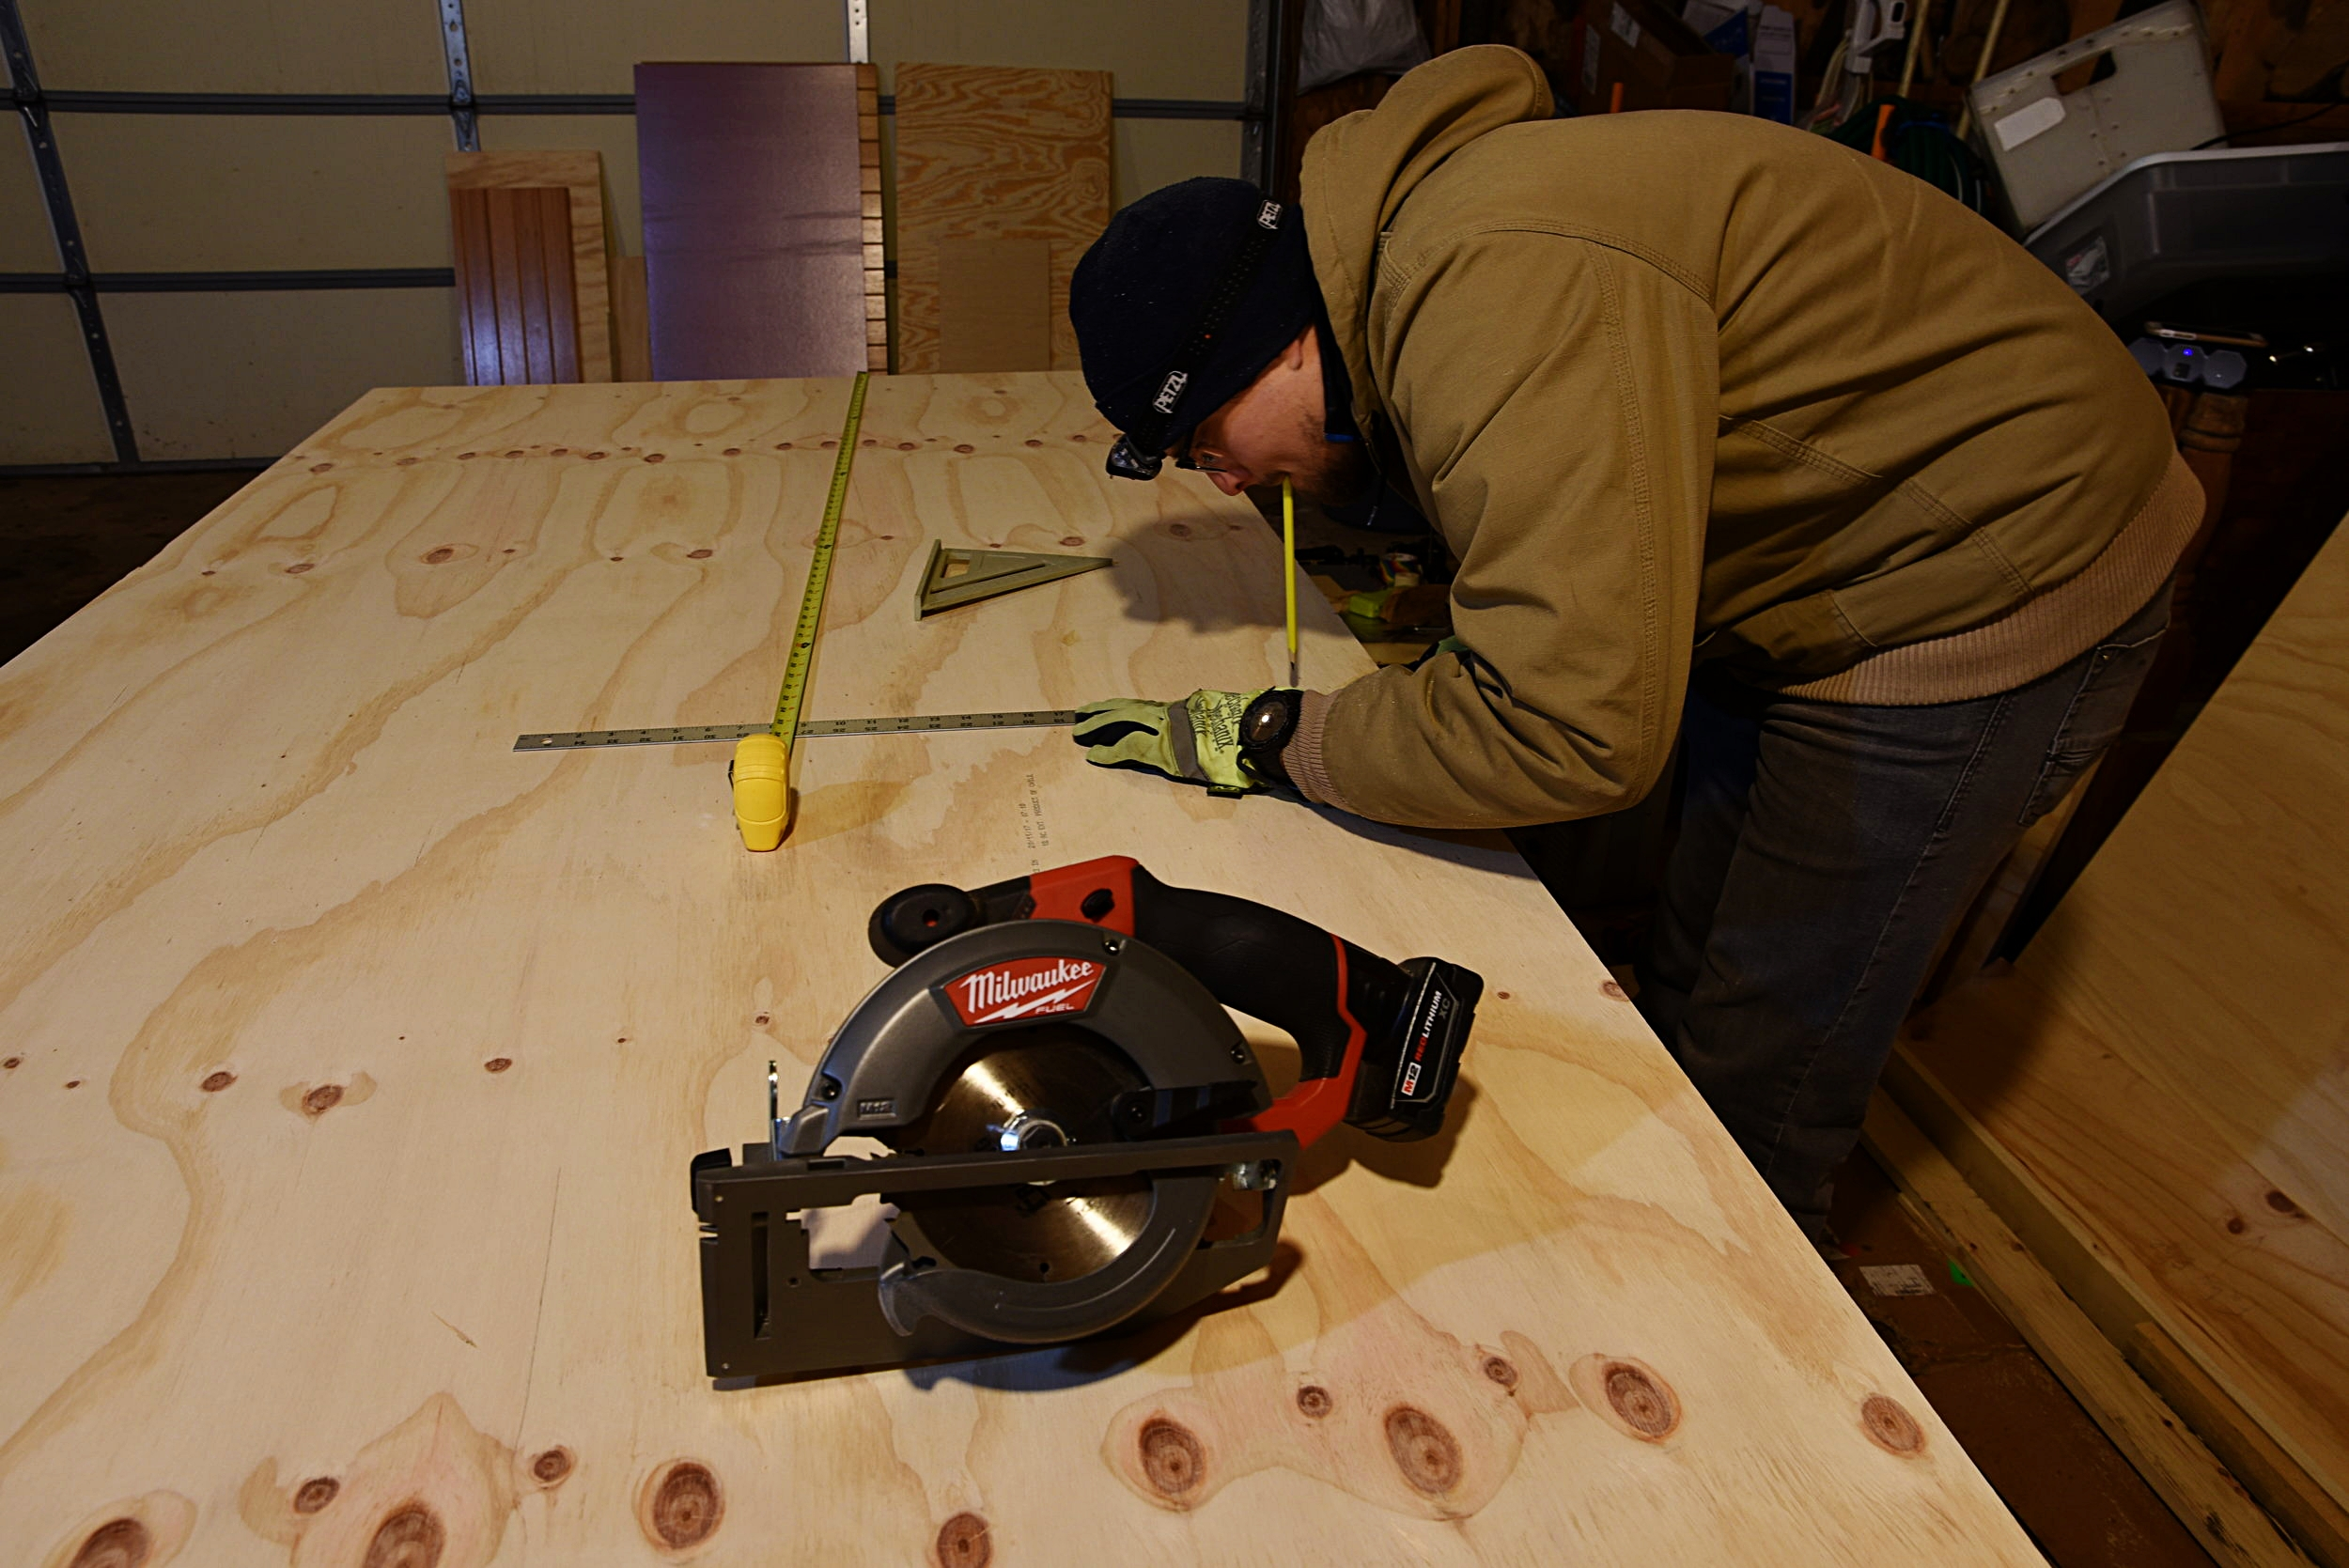 Ian carefully measures each piece of the fridge storage bench on a piece of 3/4-inch plywood.